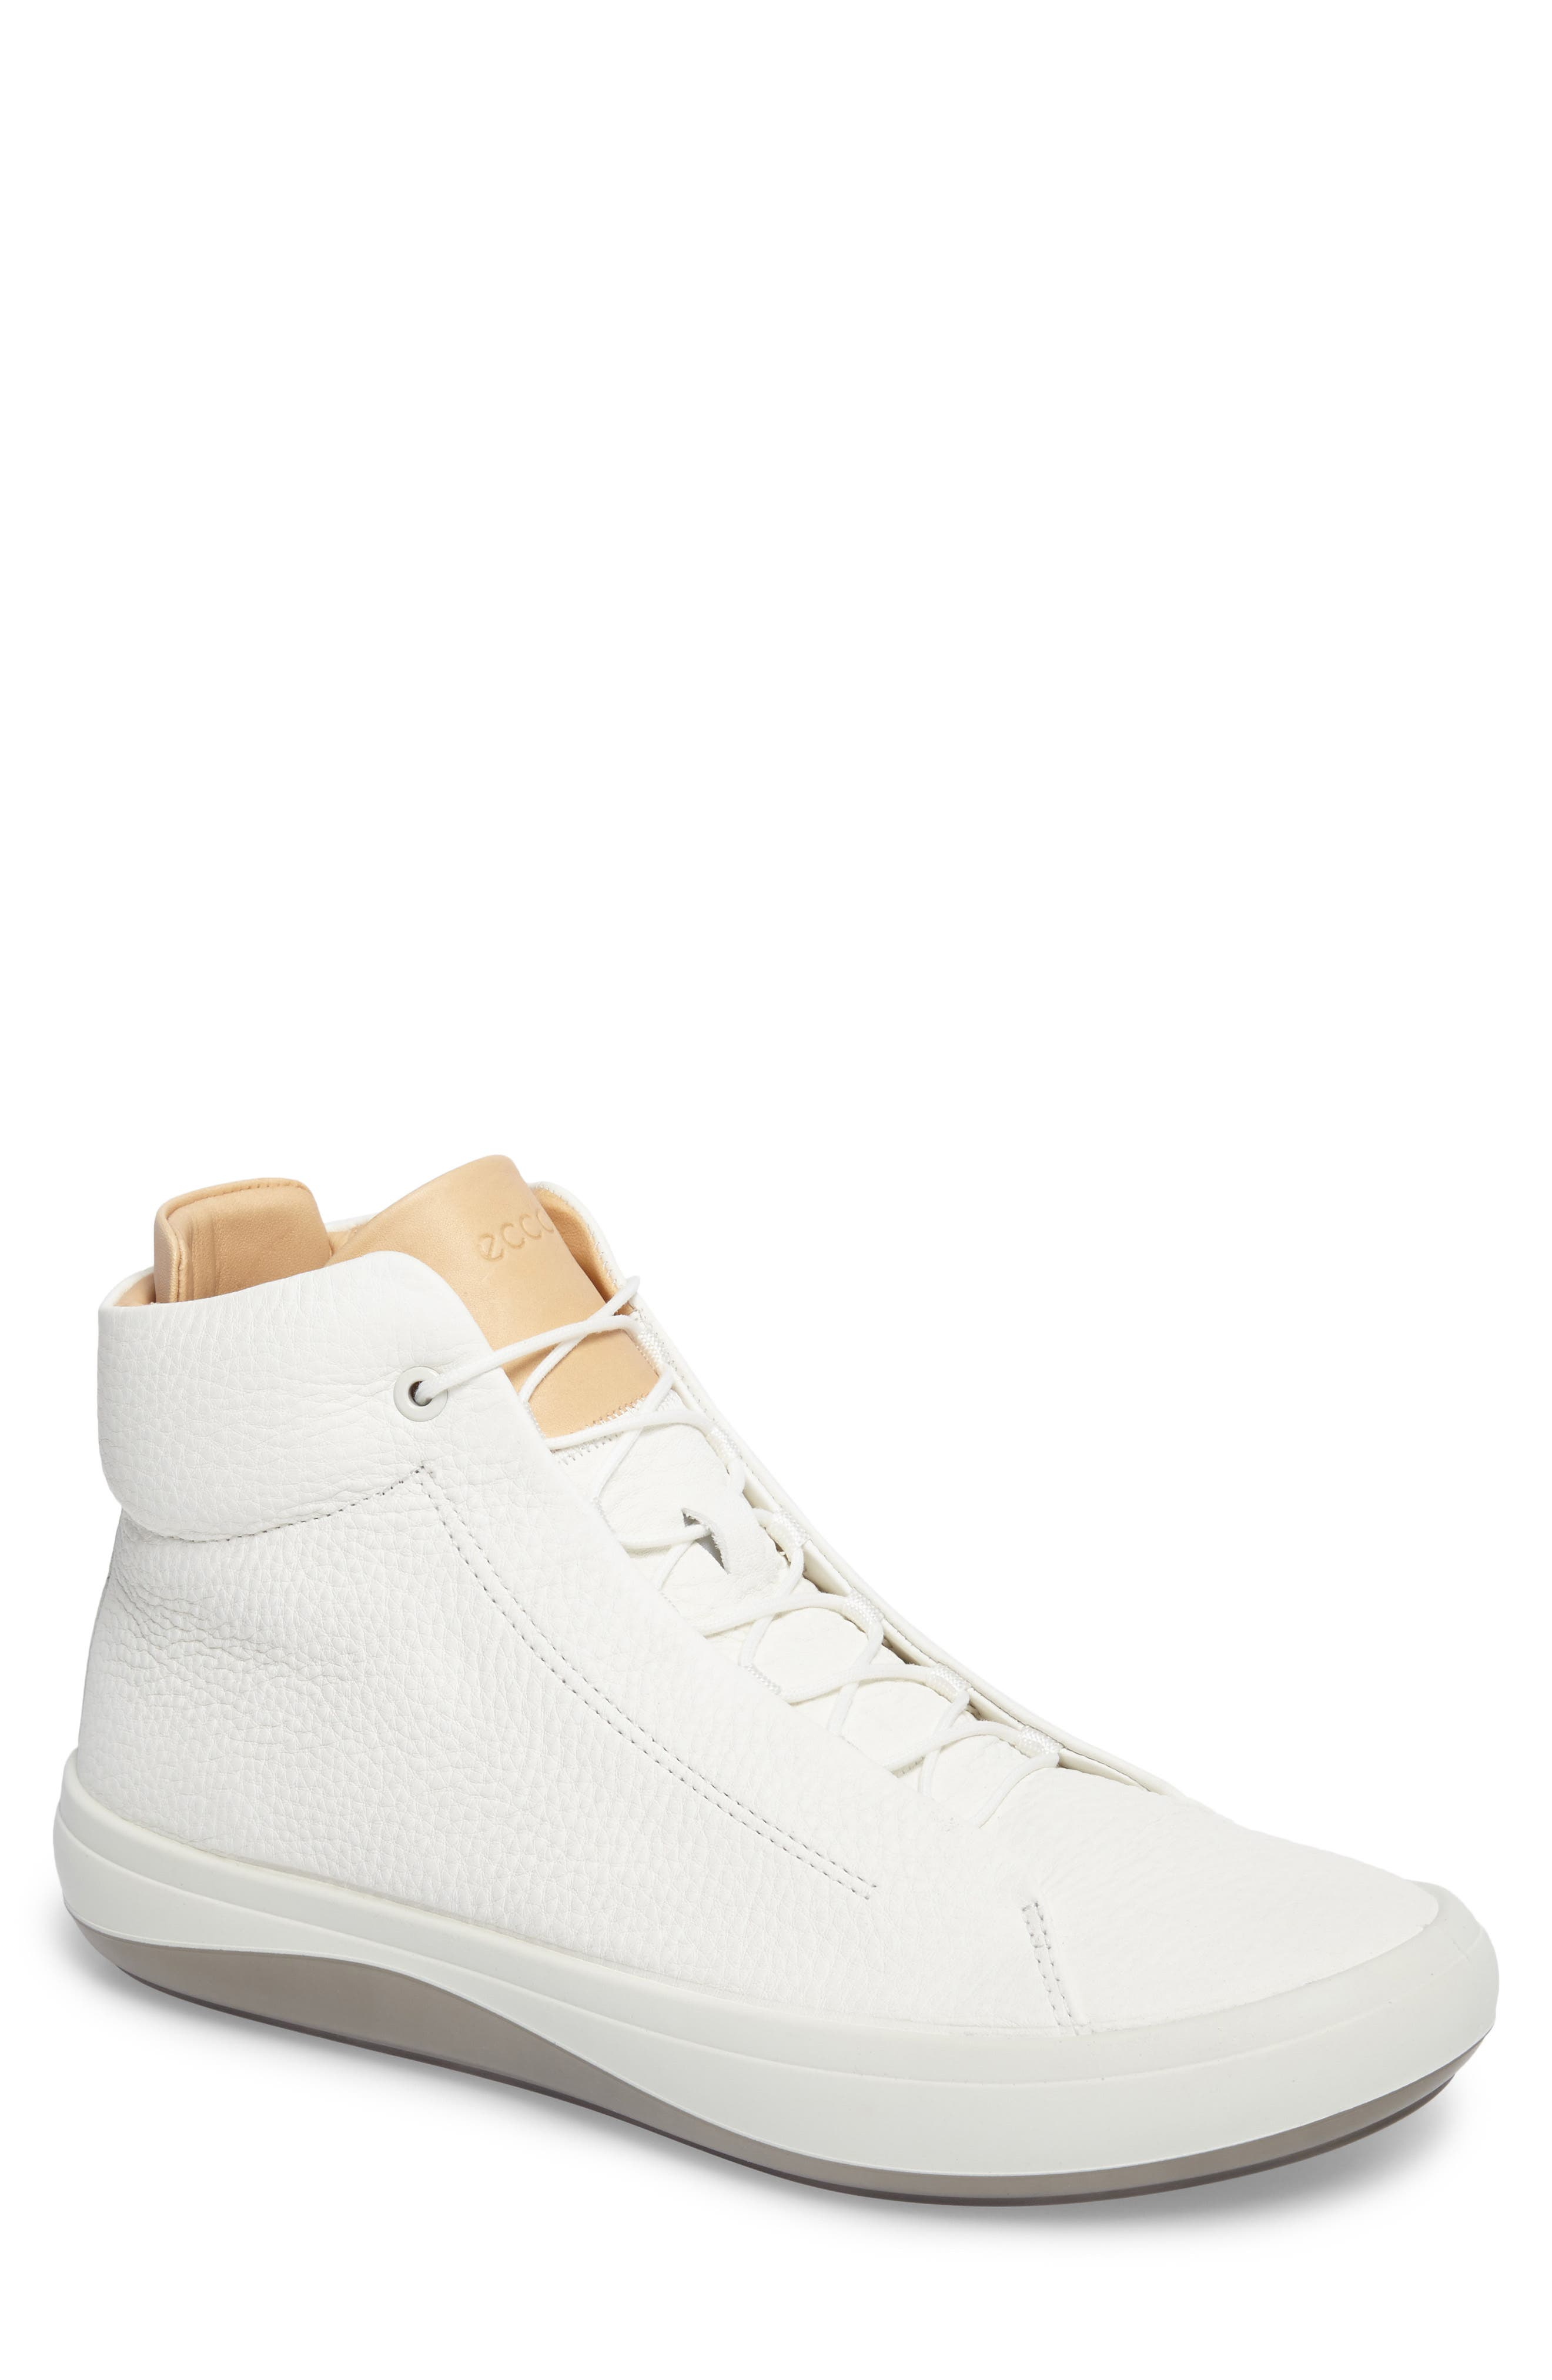 Kinhin Mid Sneaker,                             Main thumbnail 1, color,                             White Leather